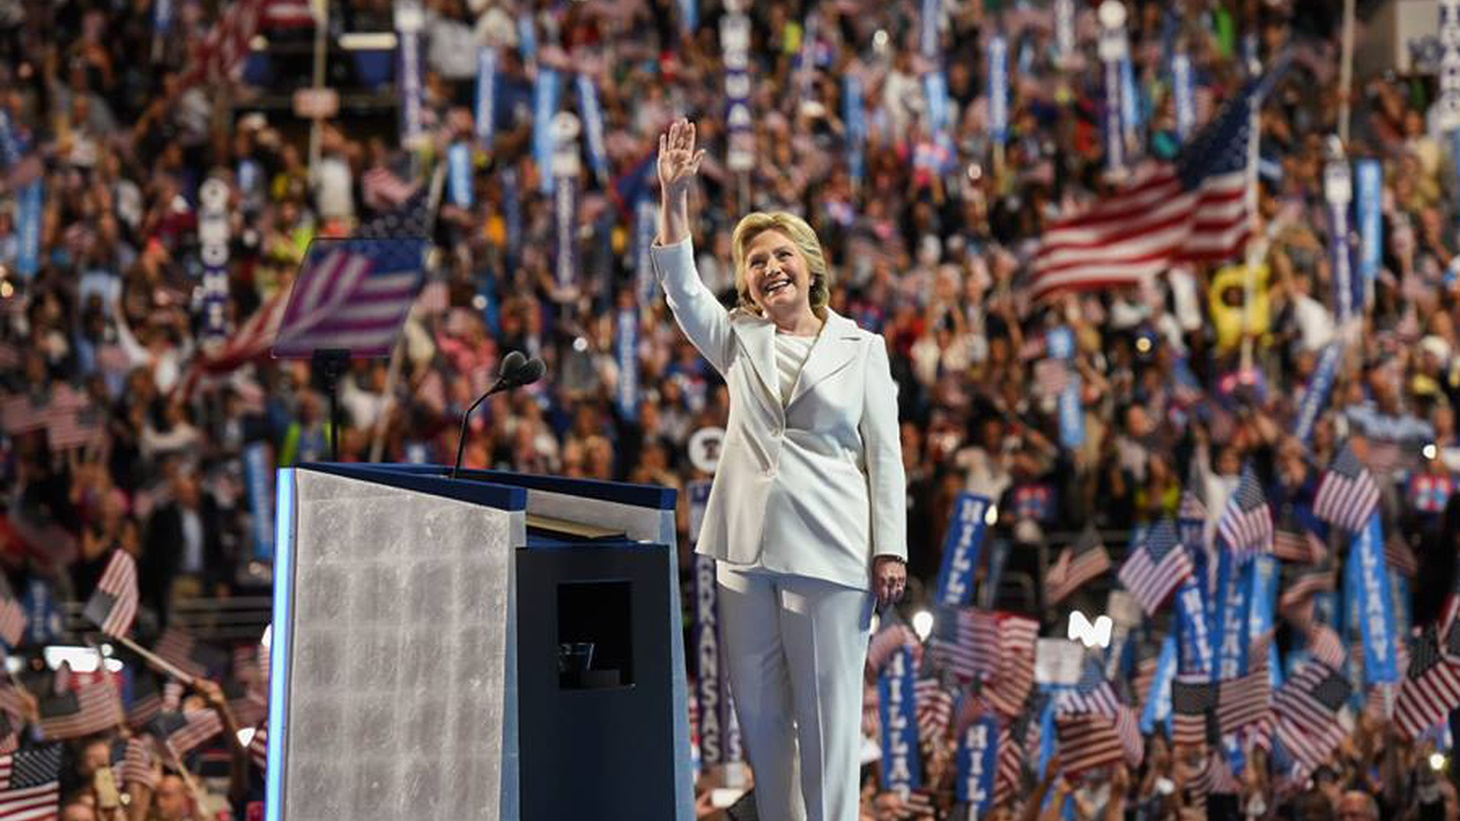 How did Hillary Clinton's convention measure up?